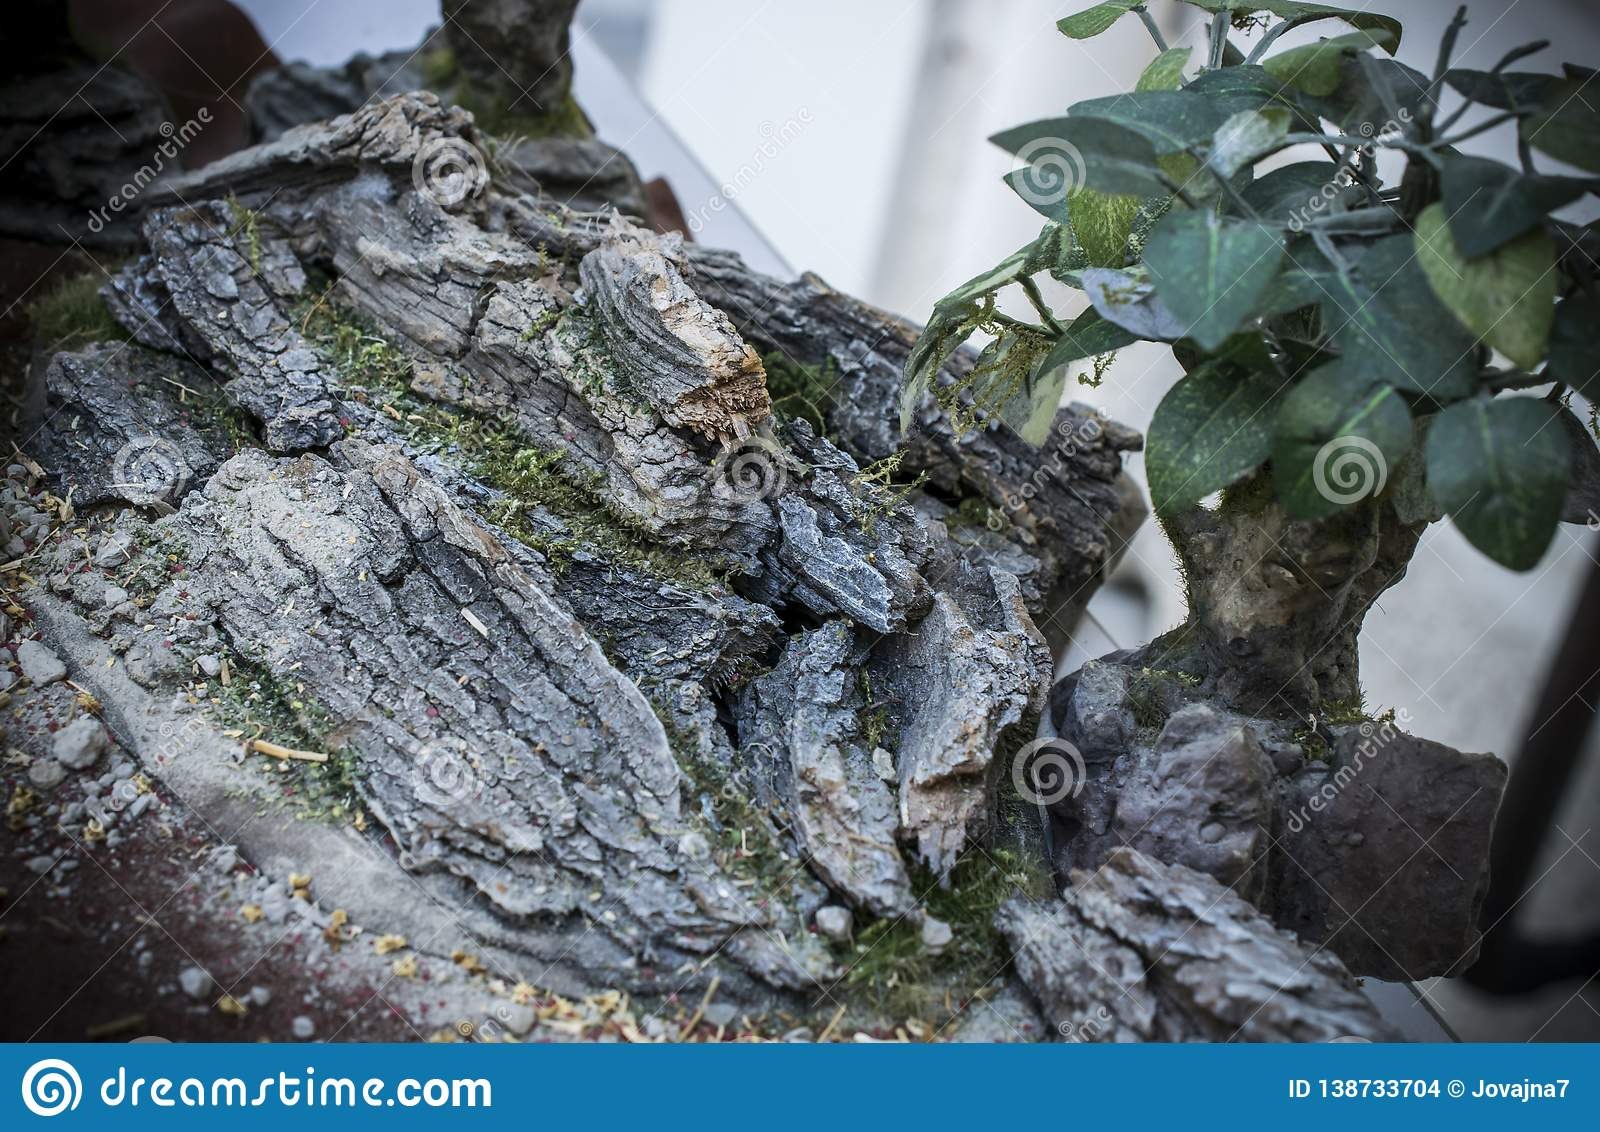 Close-up Of Details Of Wargaming Terrain Stock Photo - Image of